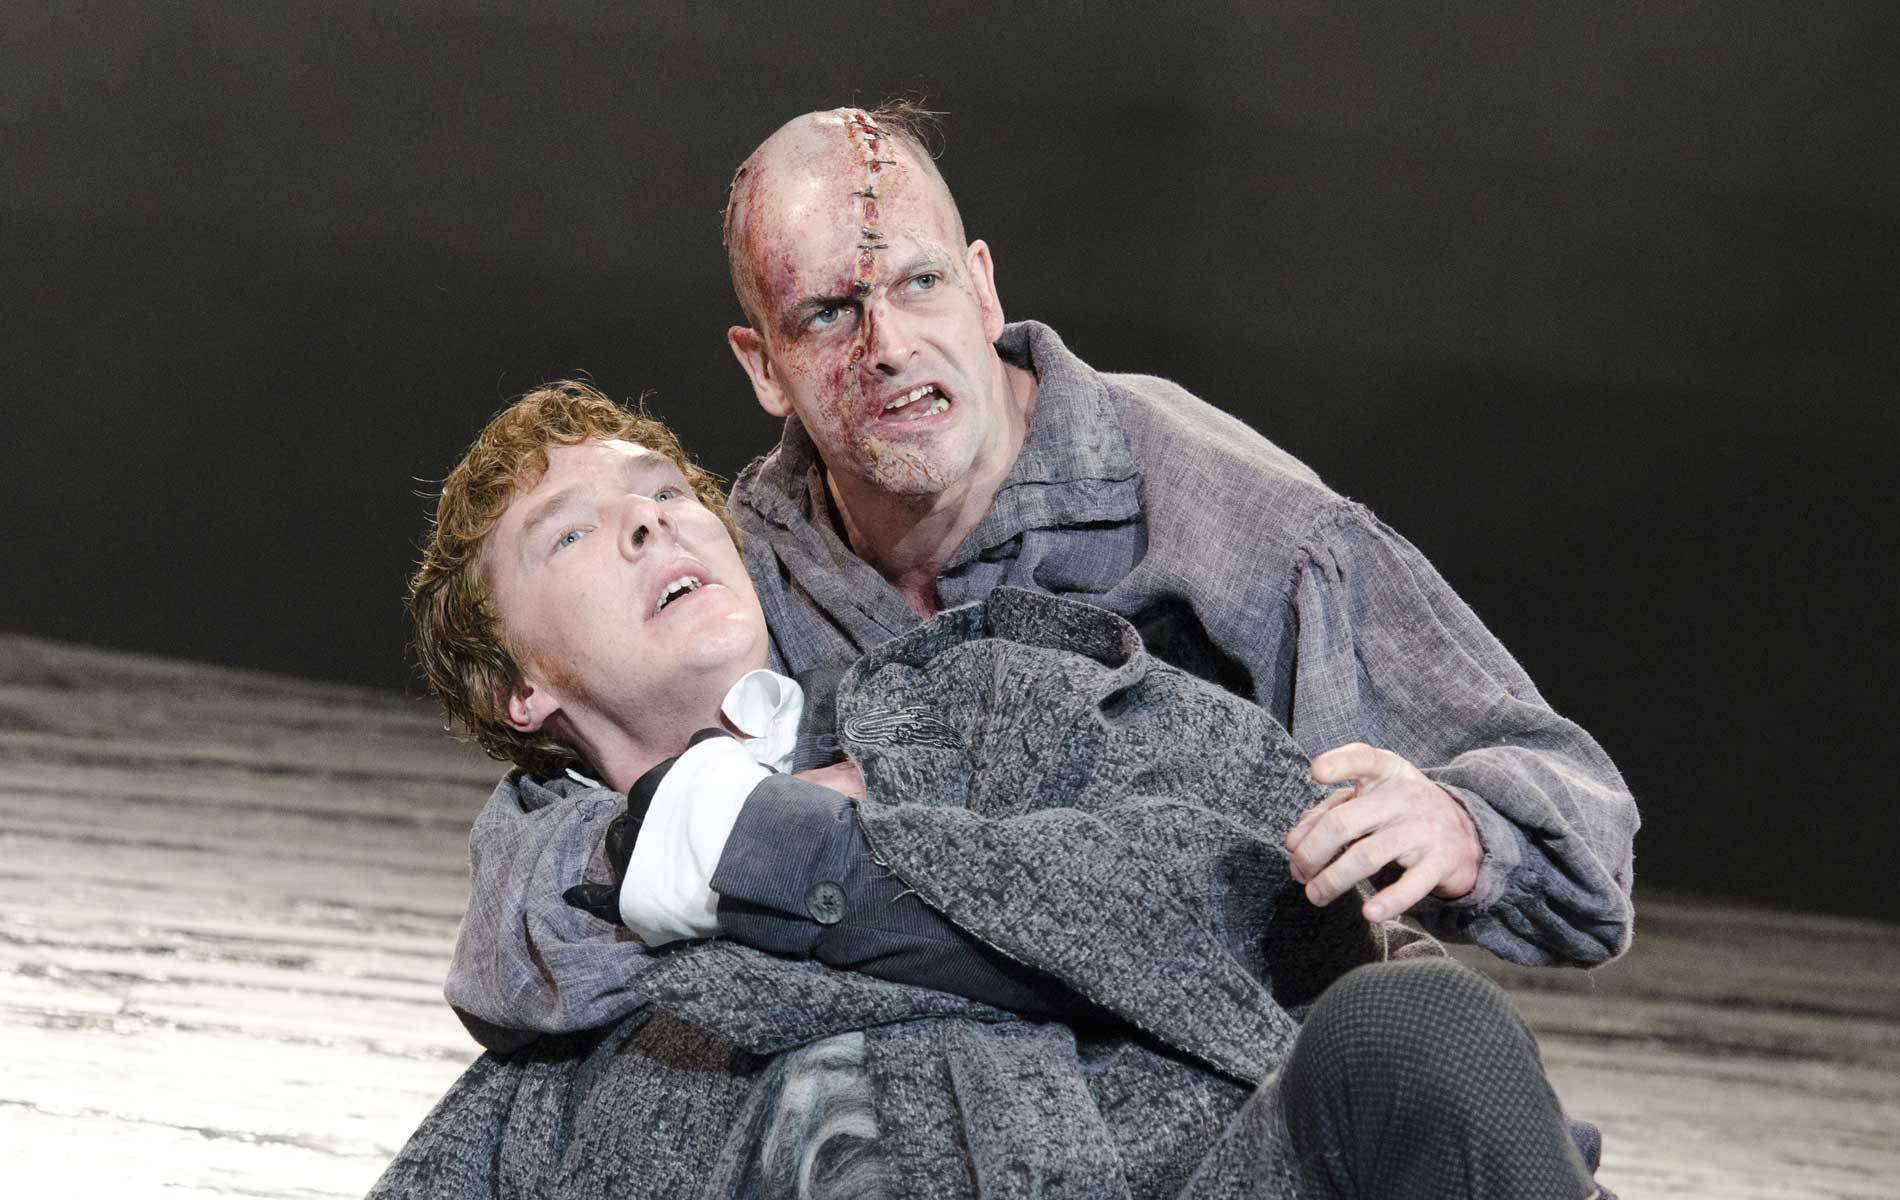 (l to r) Benedict Cumberbatch as Frankenstein and Jonny Lee Miller as The Creature in Frankenstein (2011)